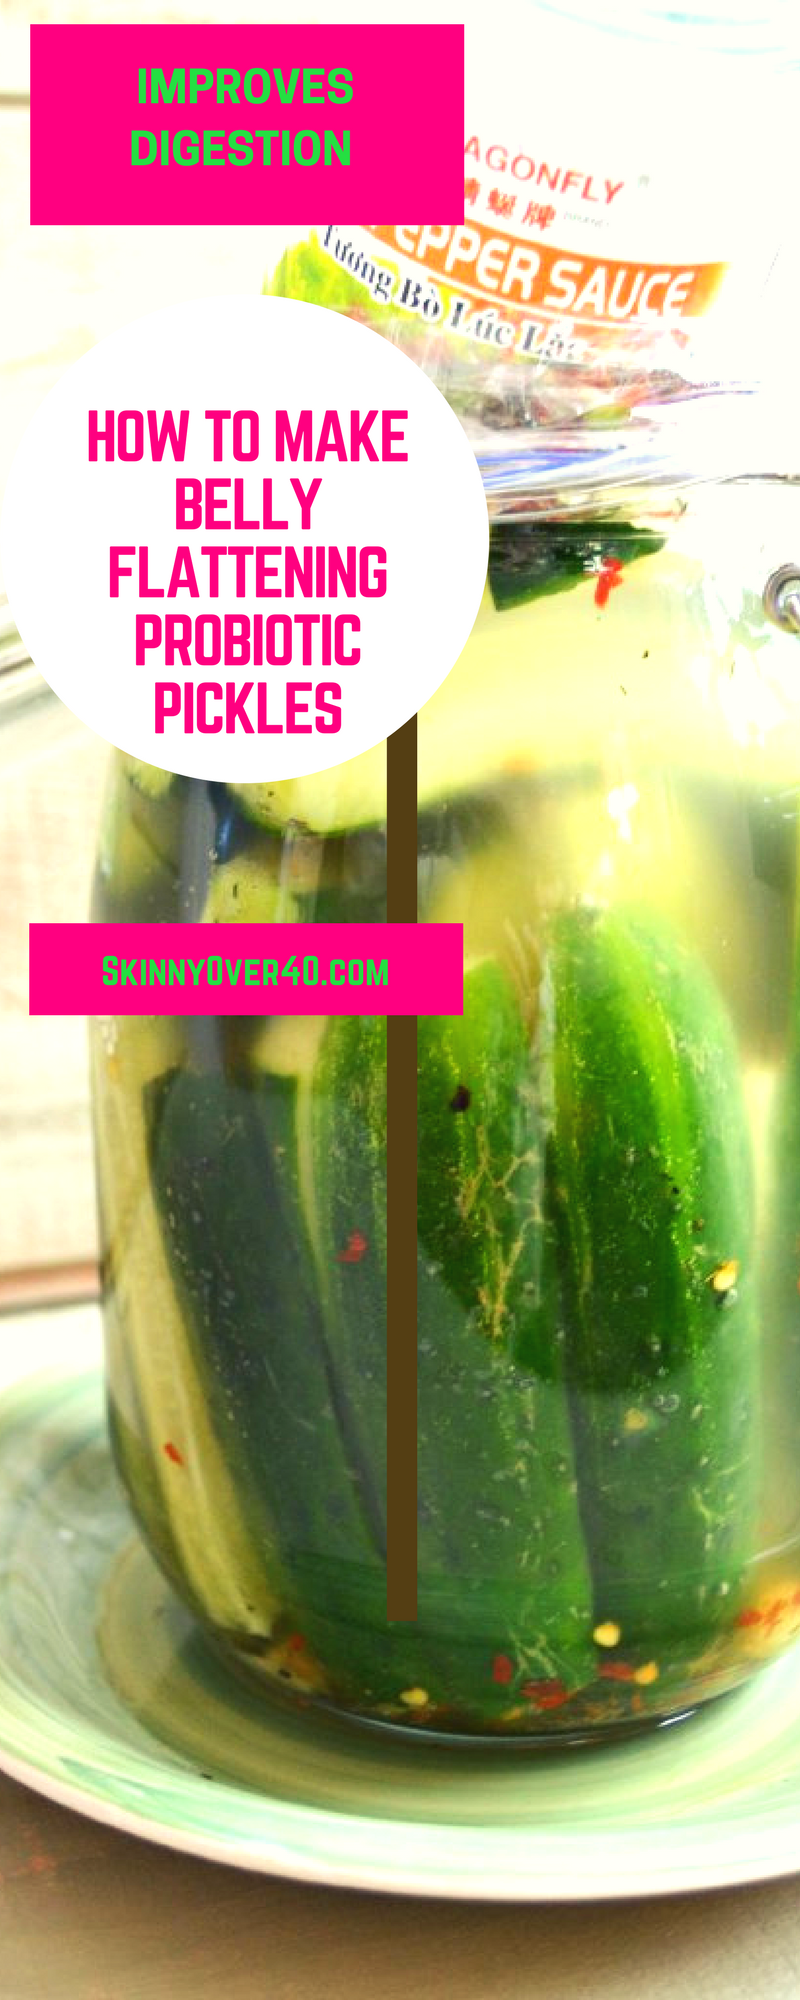 How to make homemade Probiotic Horseradish half sour pickles. Eating Probiotic Fermented foods will help you lose weight, flatten your belly and help with digestion.